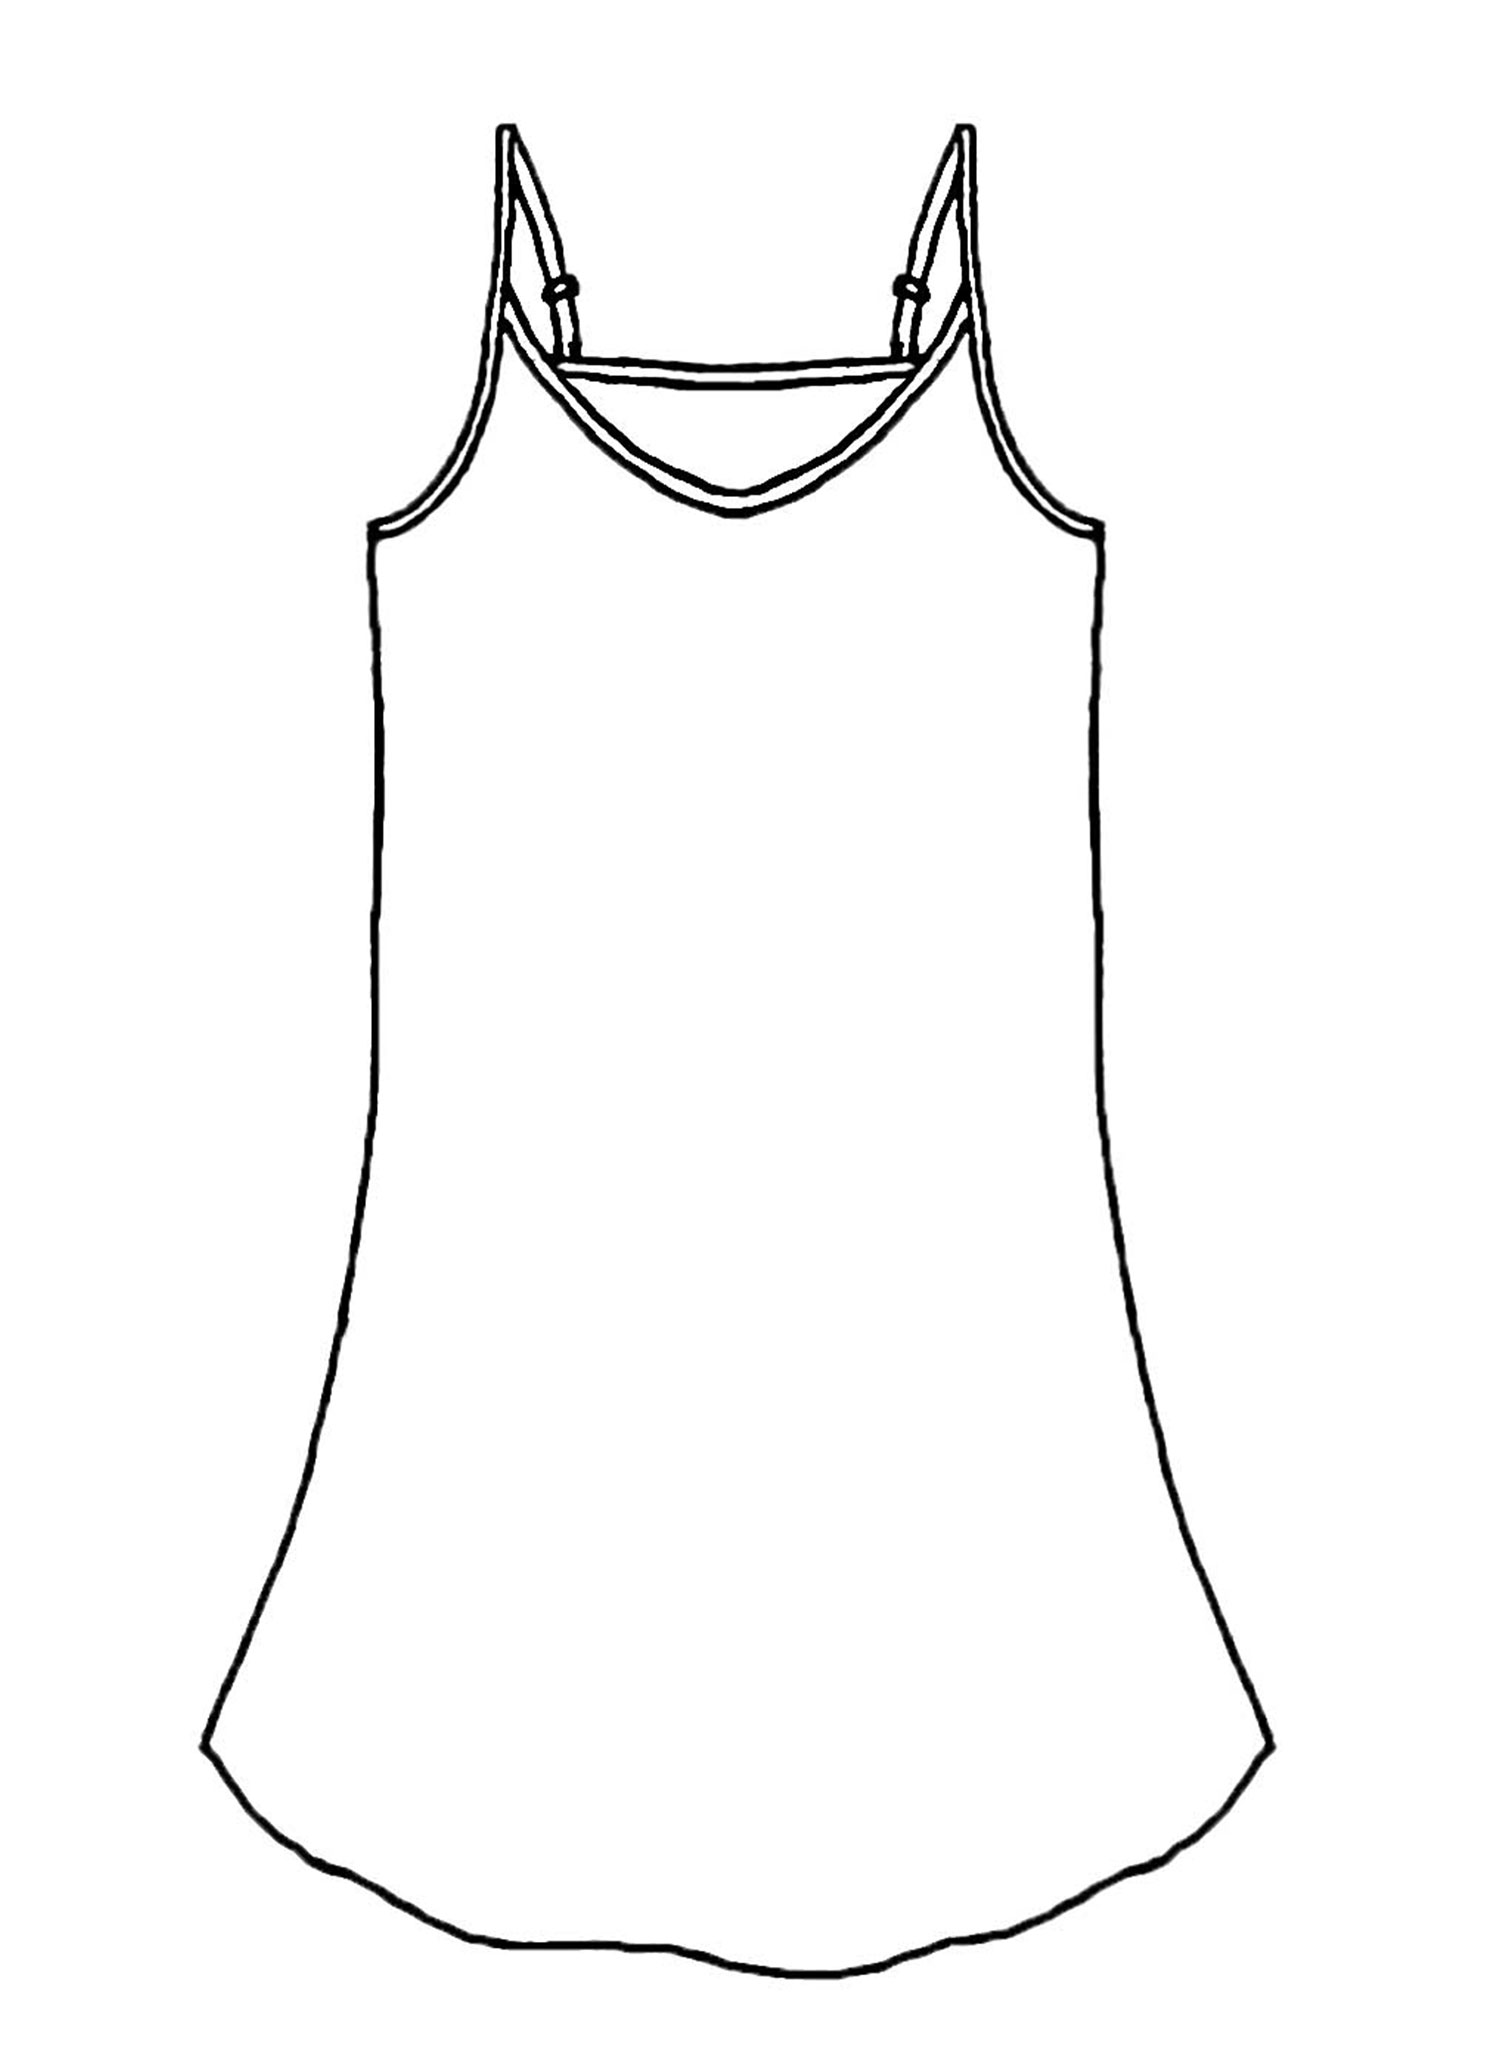 Cami Tunic sketch image